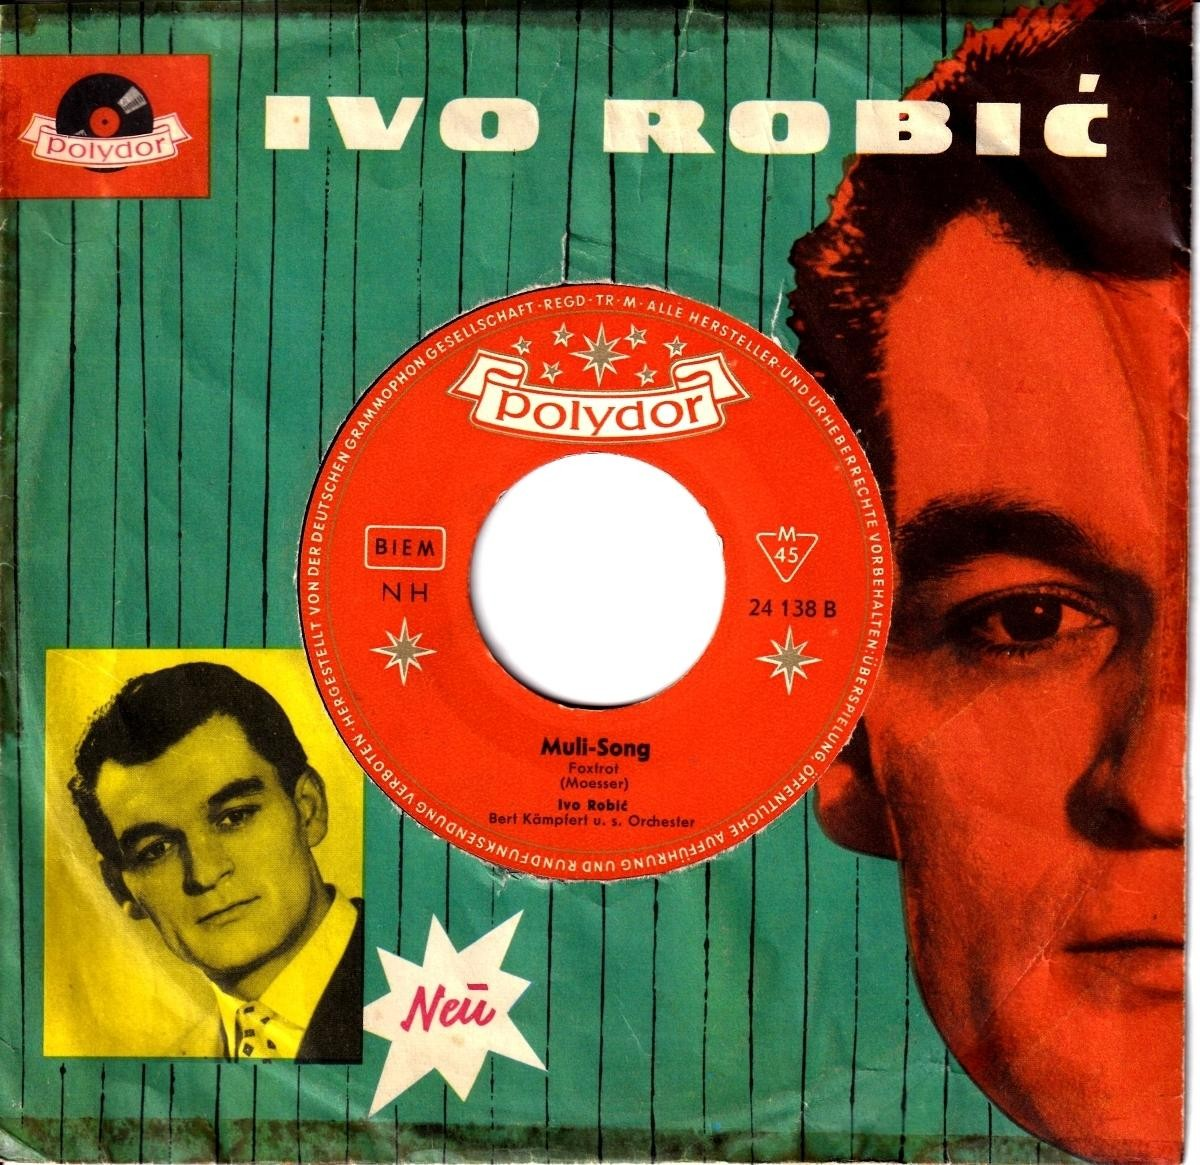 Robic Ivo - Rhondaly/muli-Song